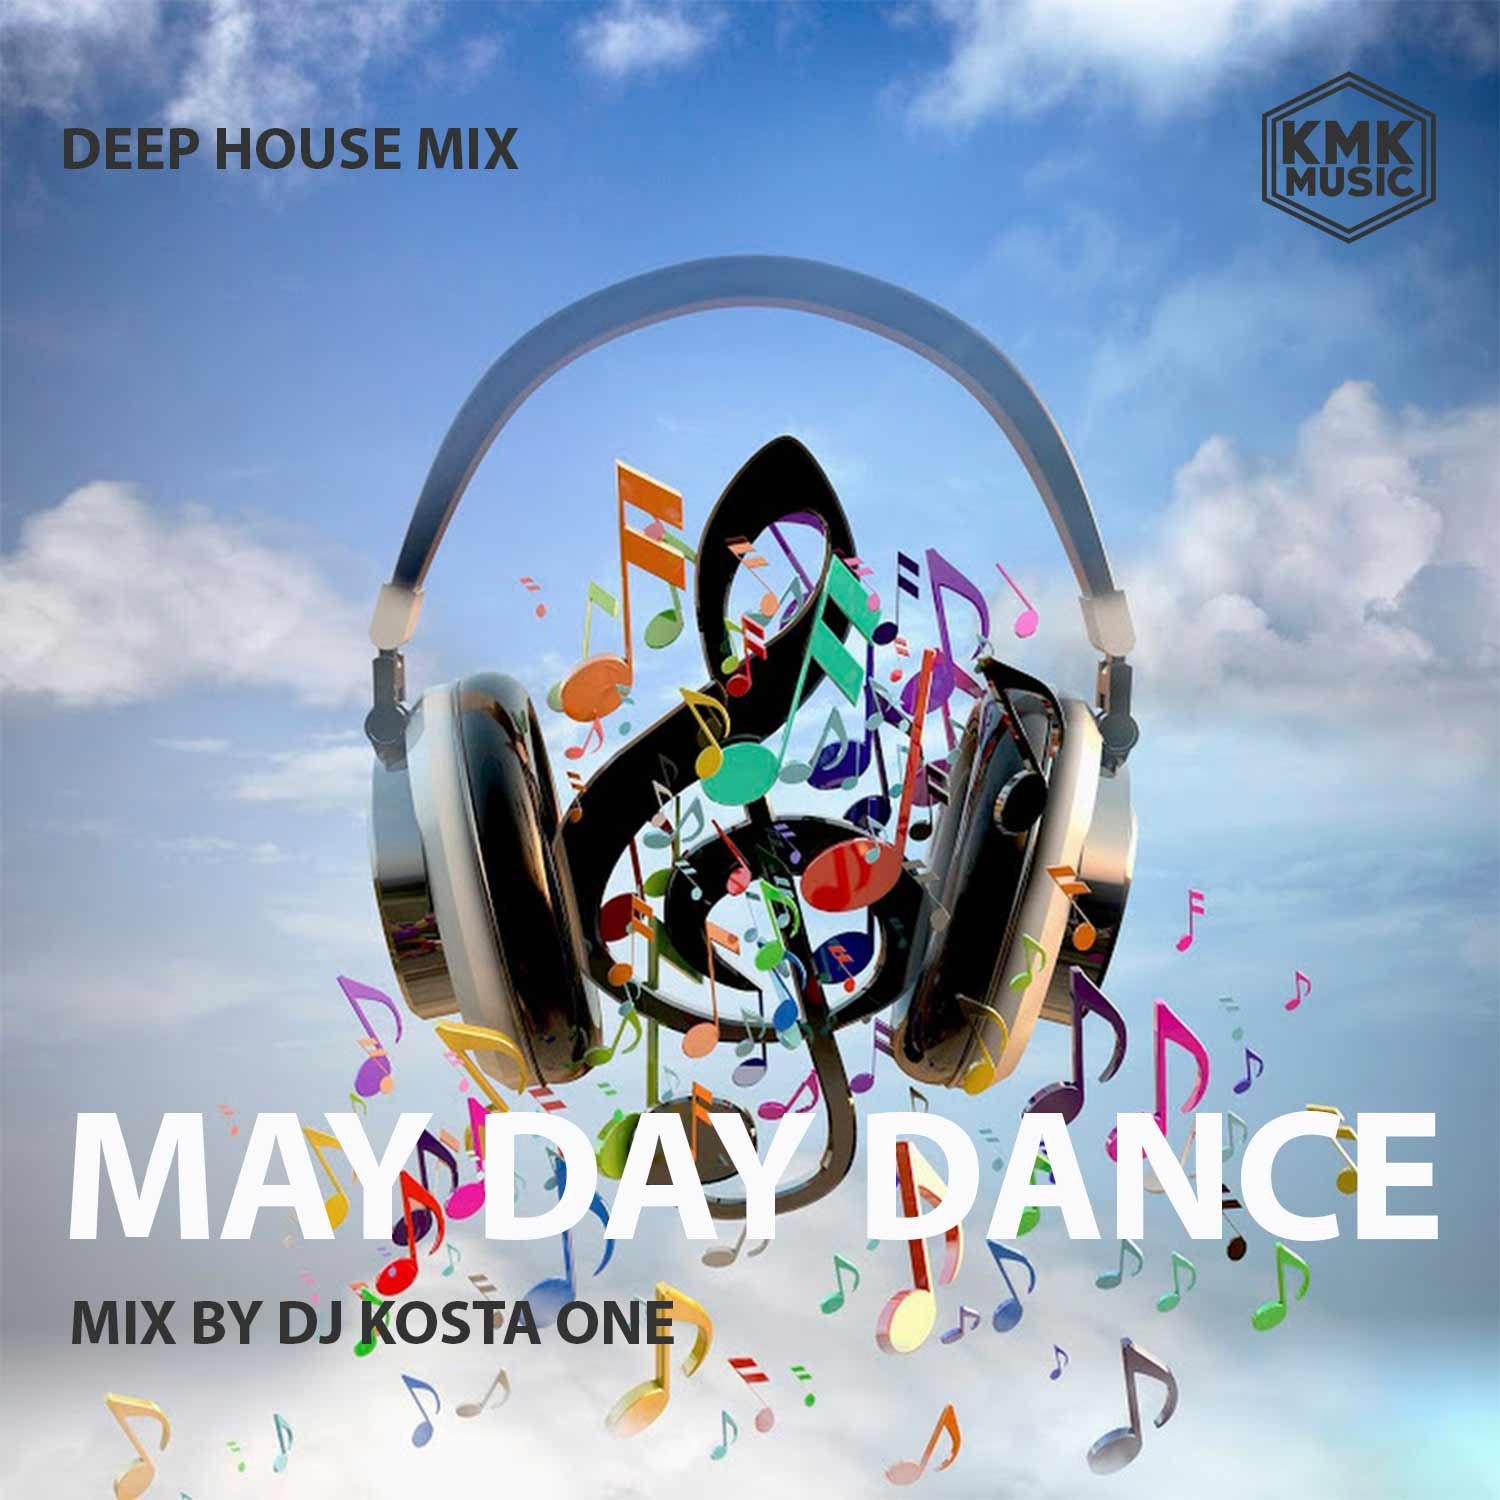 May-Day-dance-mix-by-Dj-Kosta-One-mp3-image